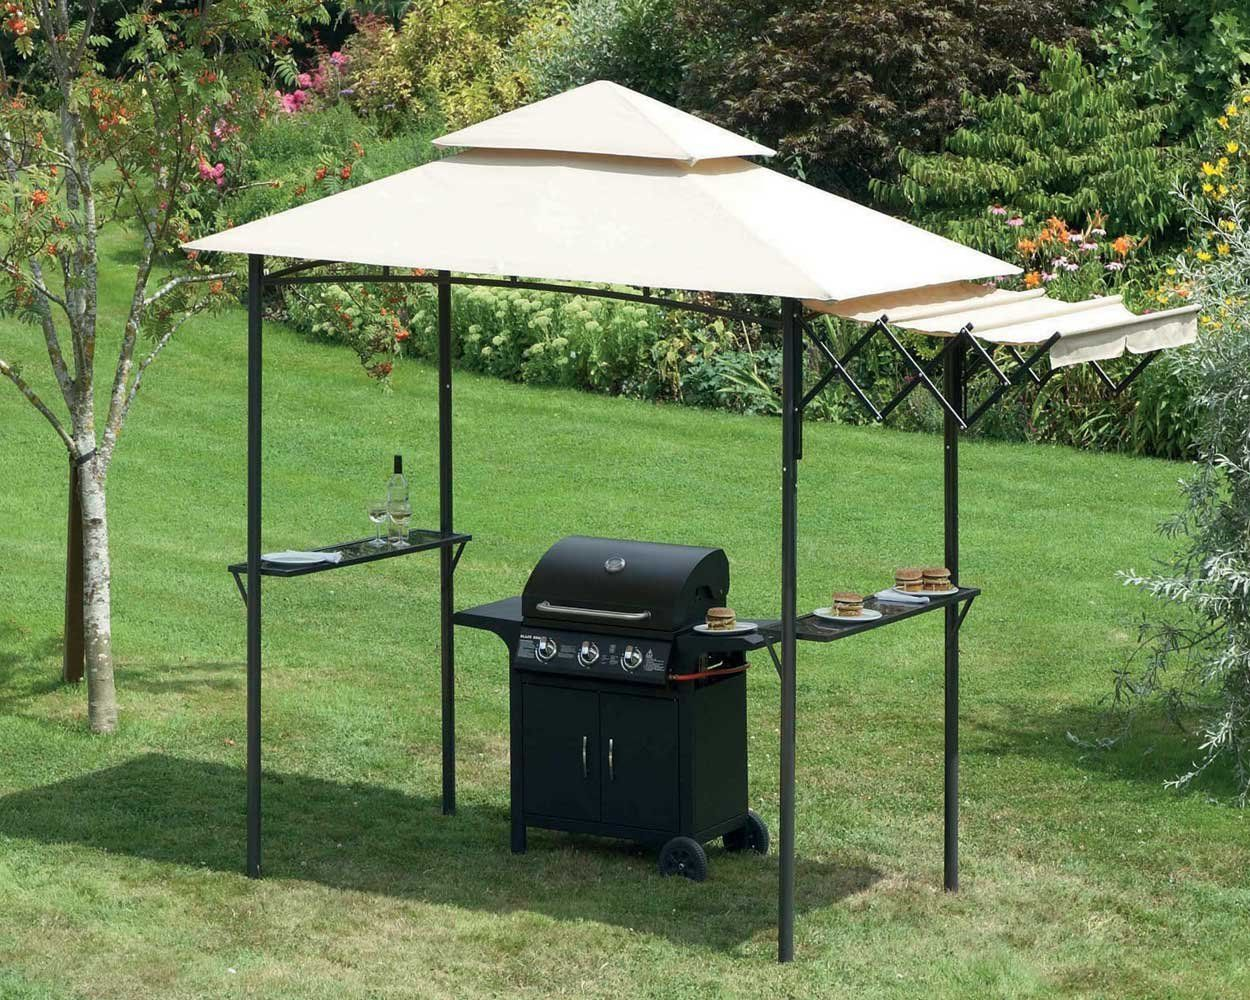 side garden with wooden cuckooland shelter awning leisure designs table edge fsc bbq broxton gazebo zest certified